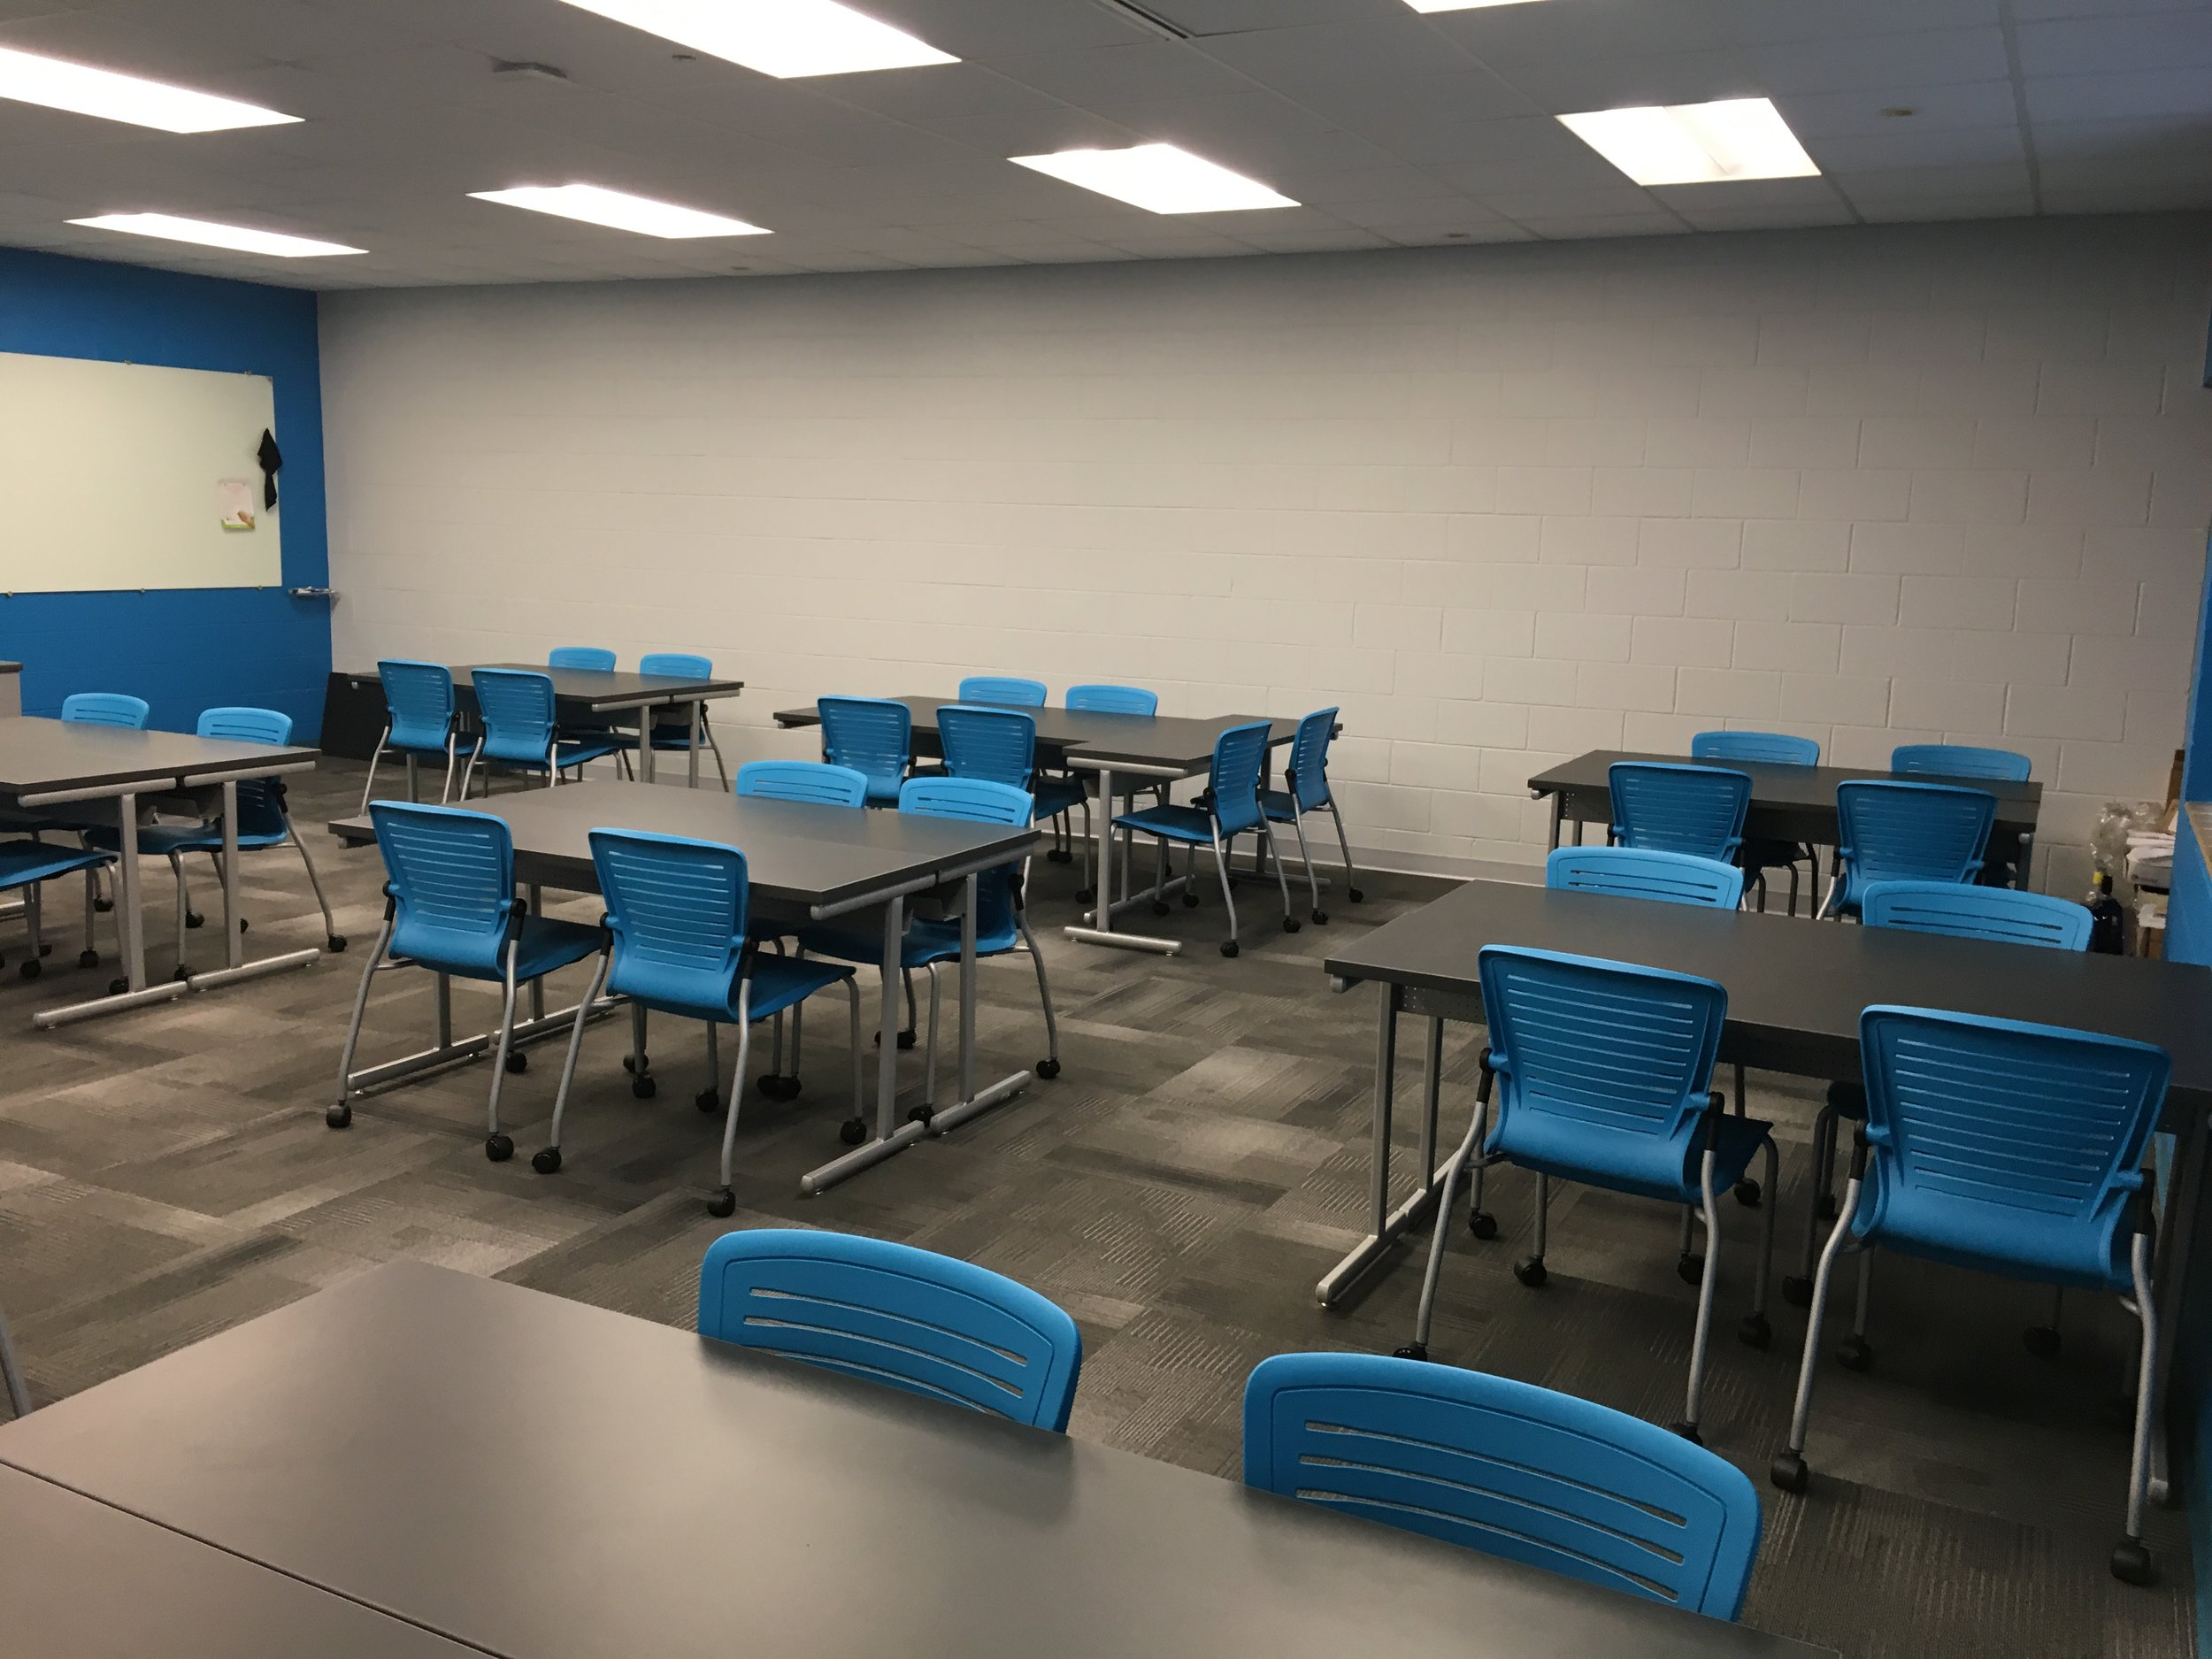 Jacksonville State University - Active Learning Table Install Pic 15.JPG